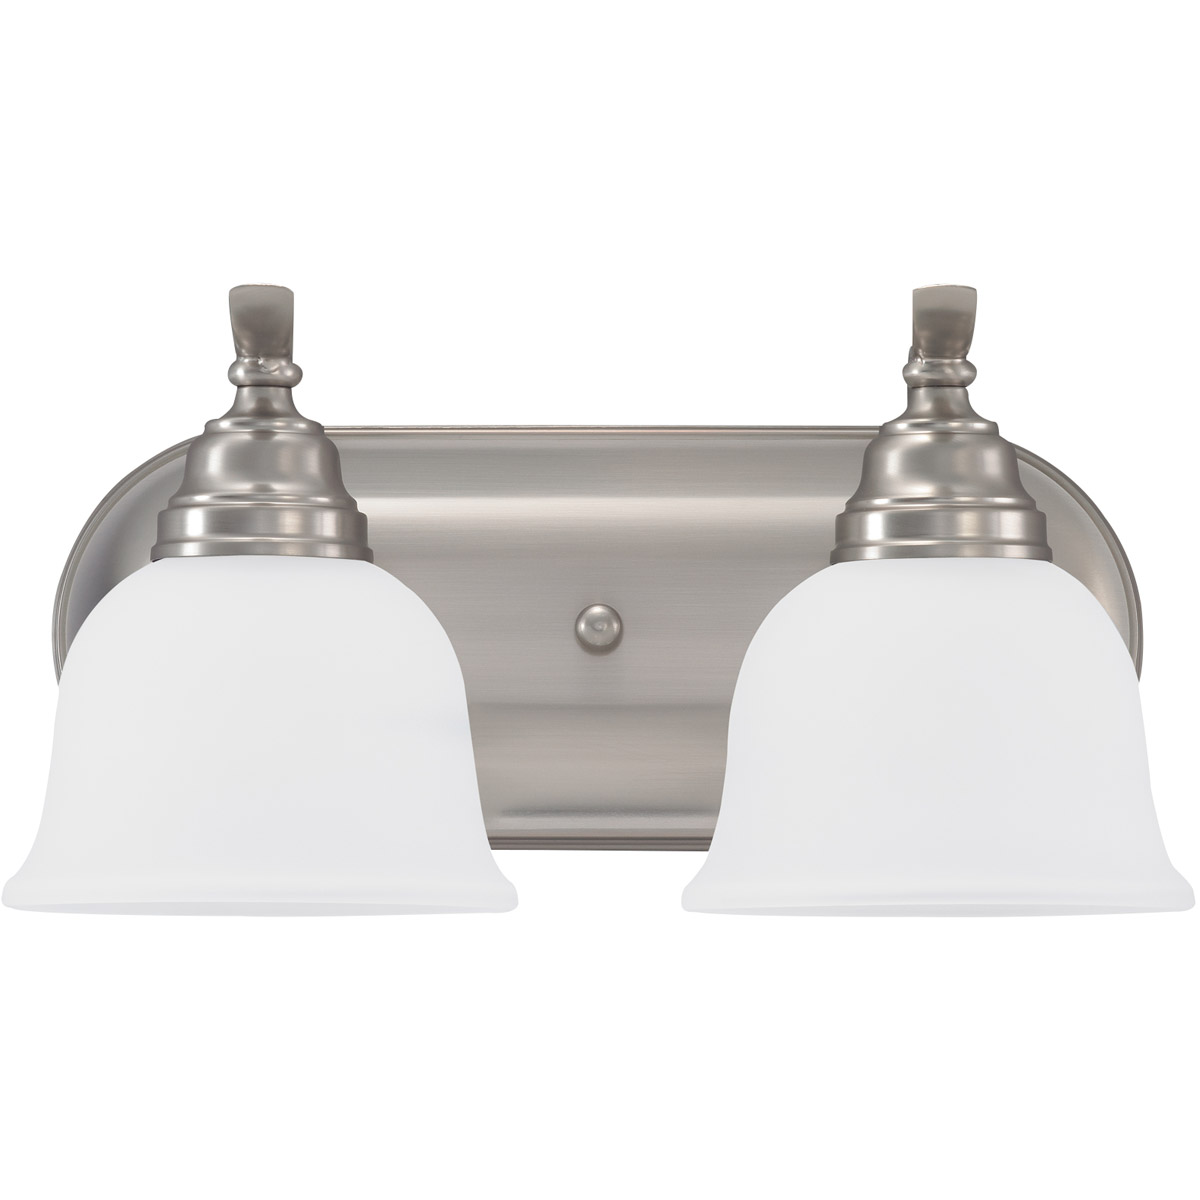 Sea Gull Lighting Wheaton 2 Light Bath Vanity in Brushed Nickel 44626-962